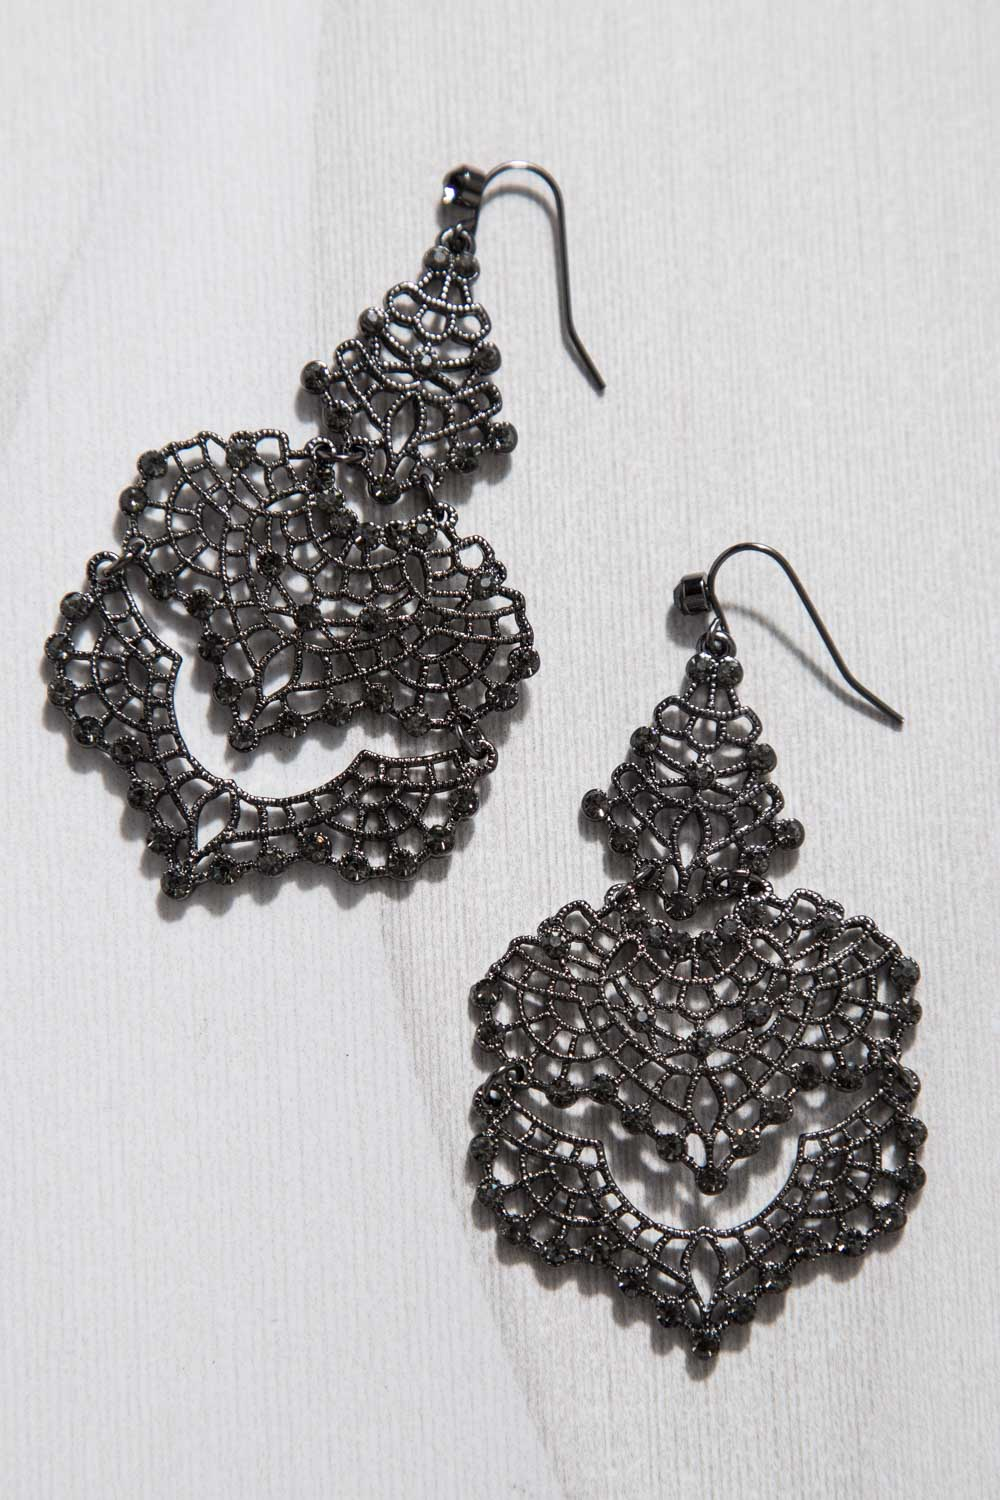 Type 2 Versailles Earrings